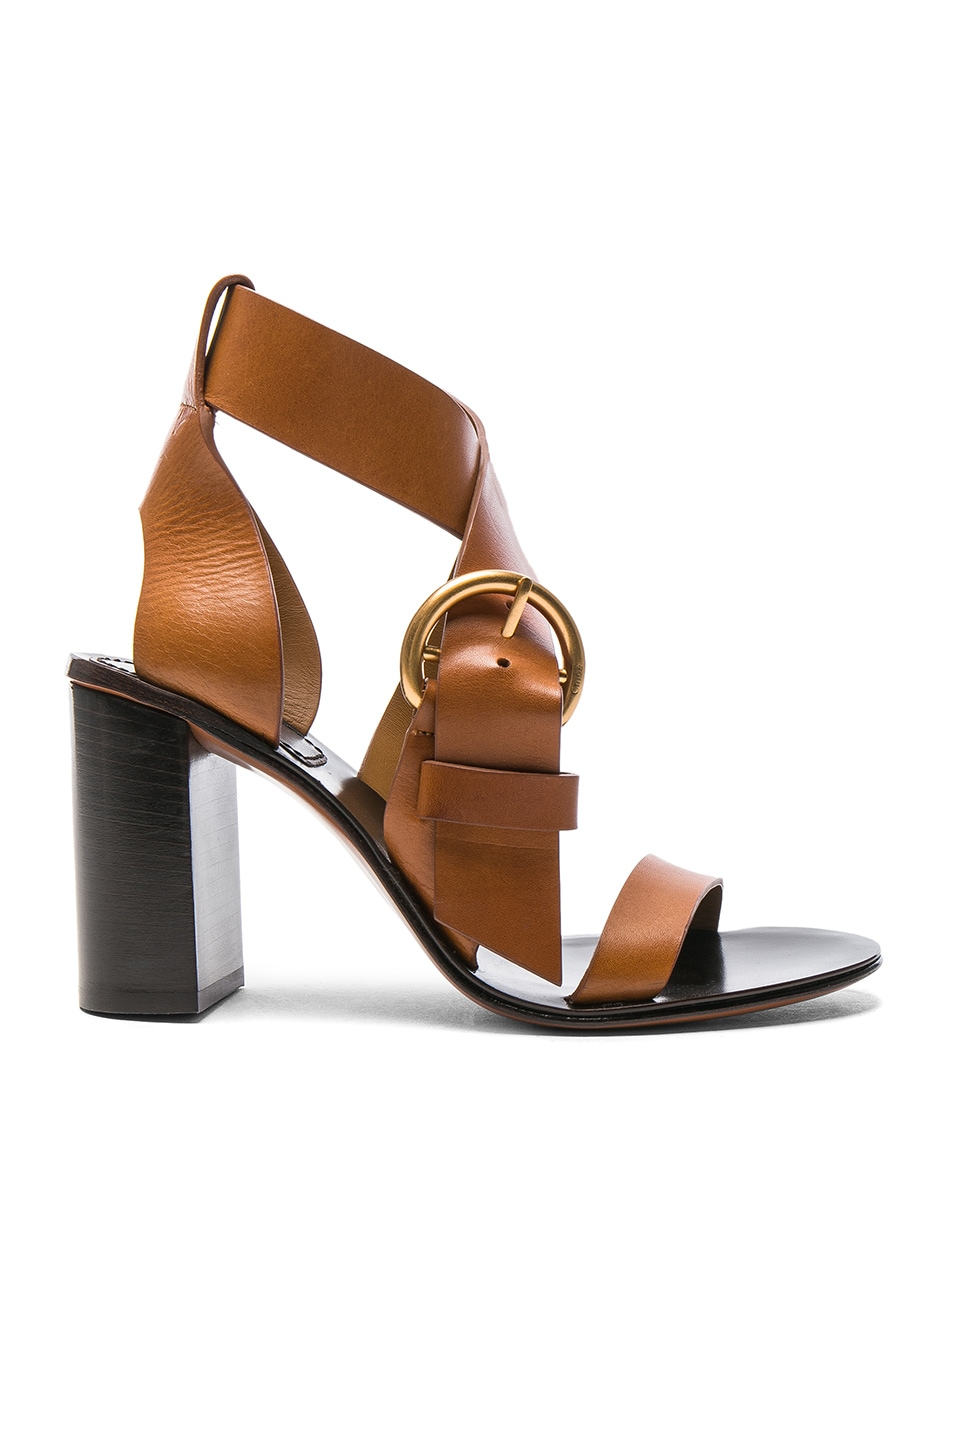 Image 1 of Chloe Leather Nils Sandals in Praline